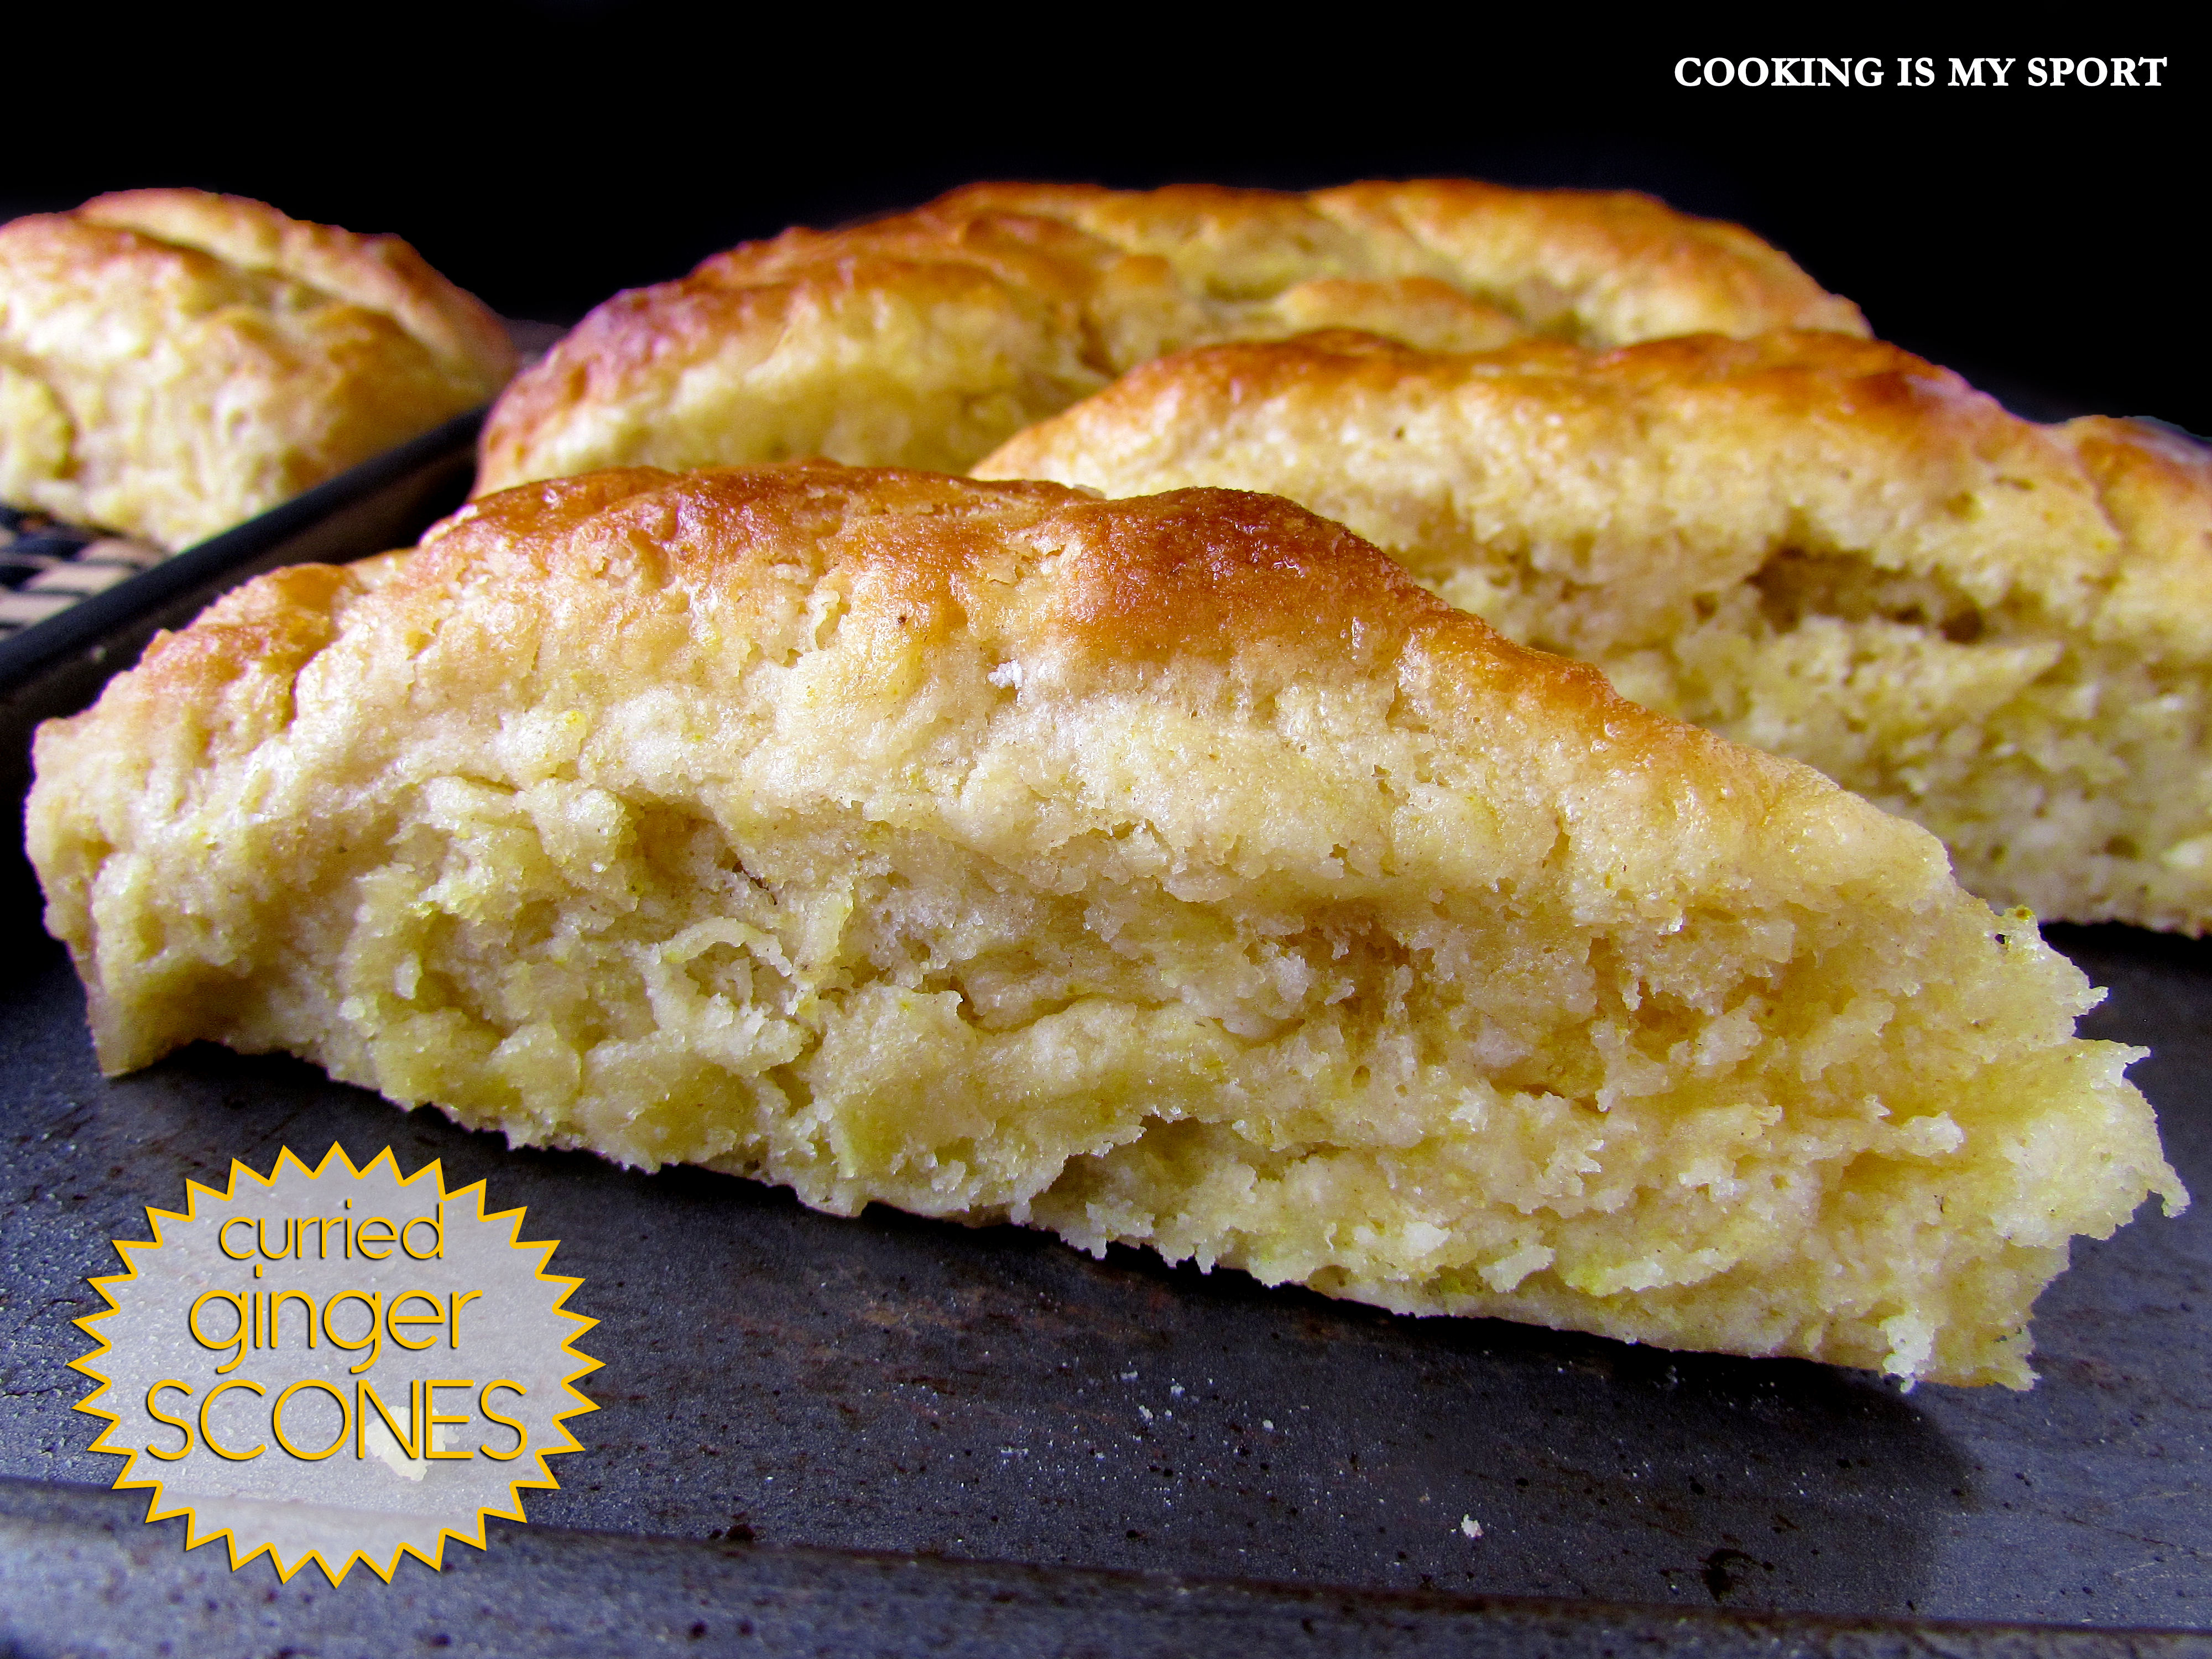 Curried Ginger Scones3